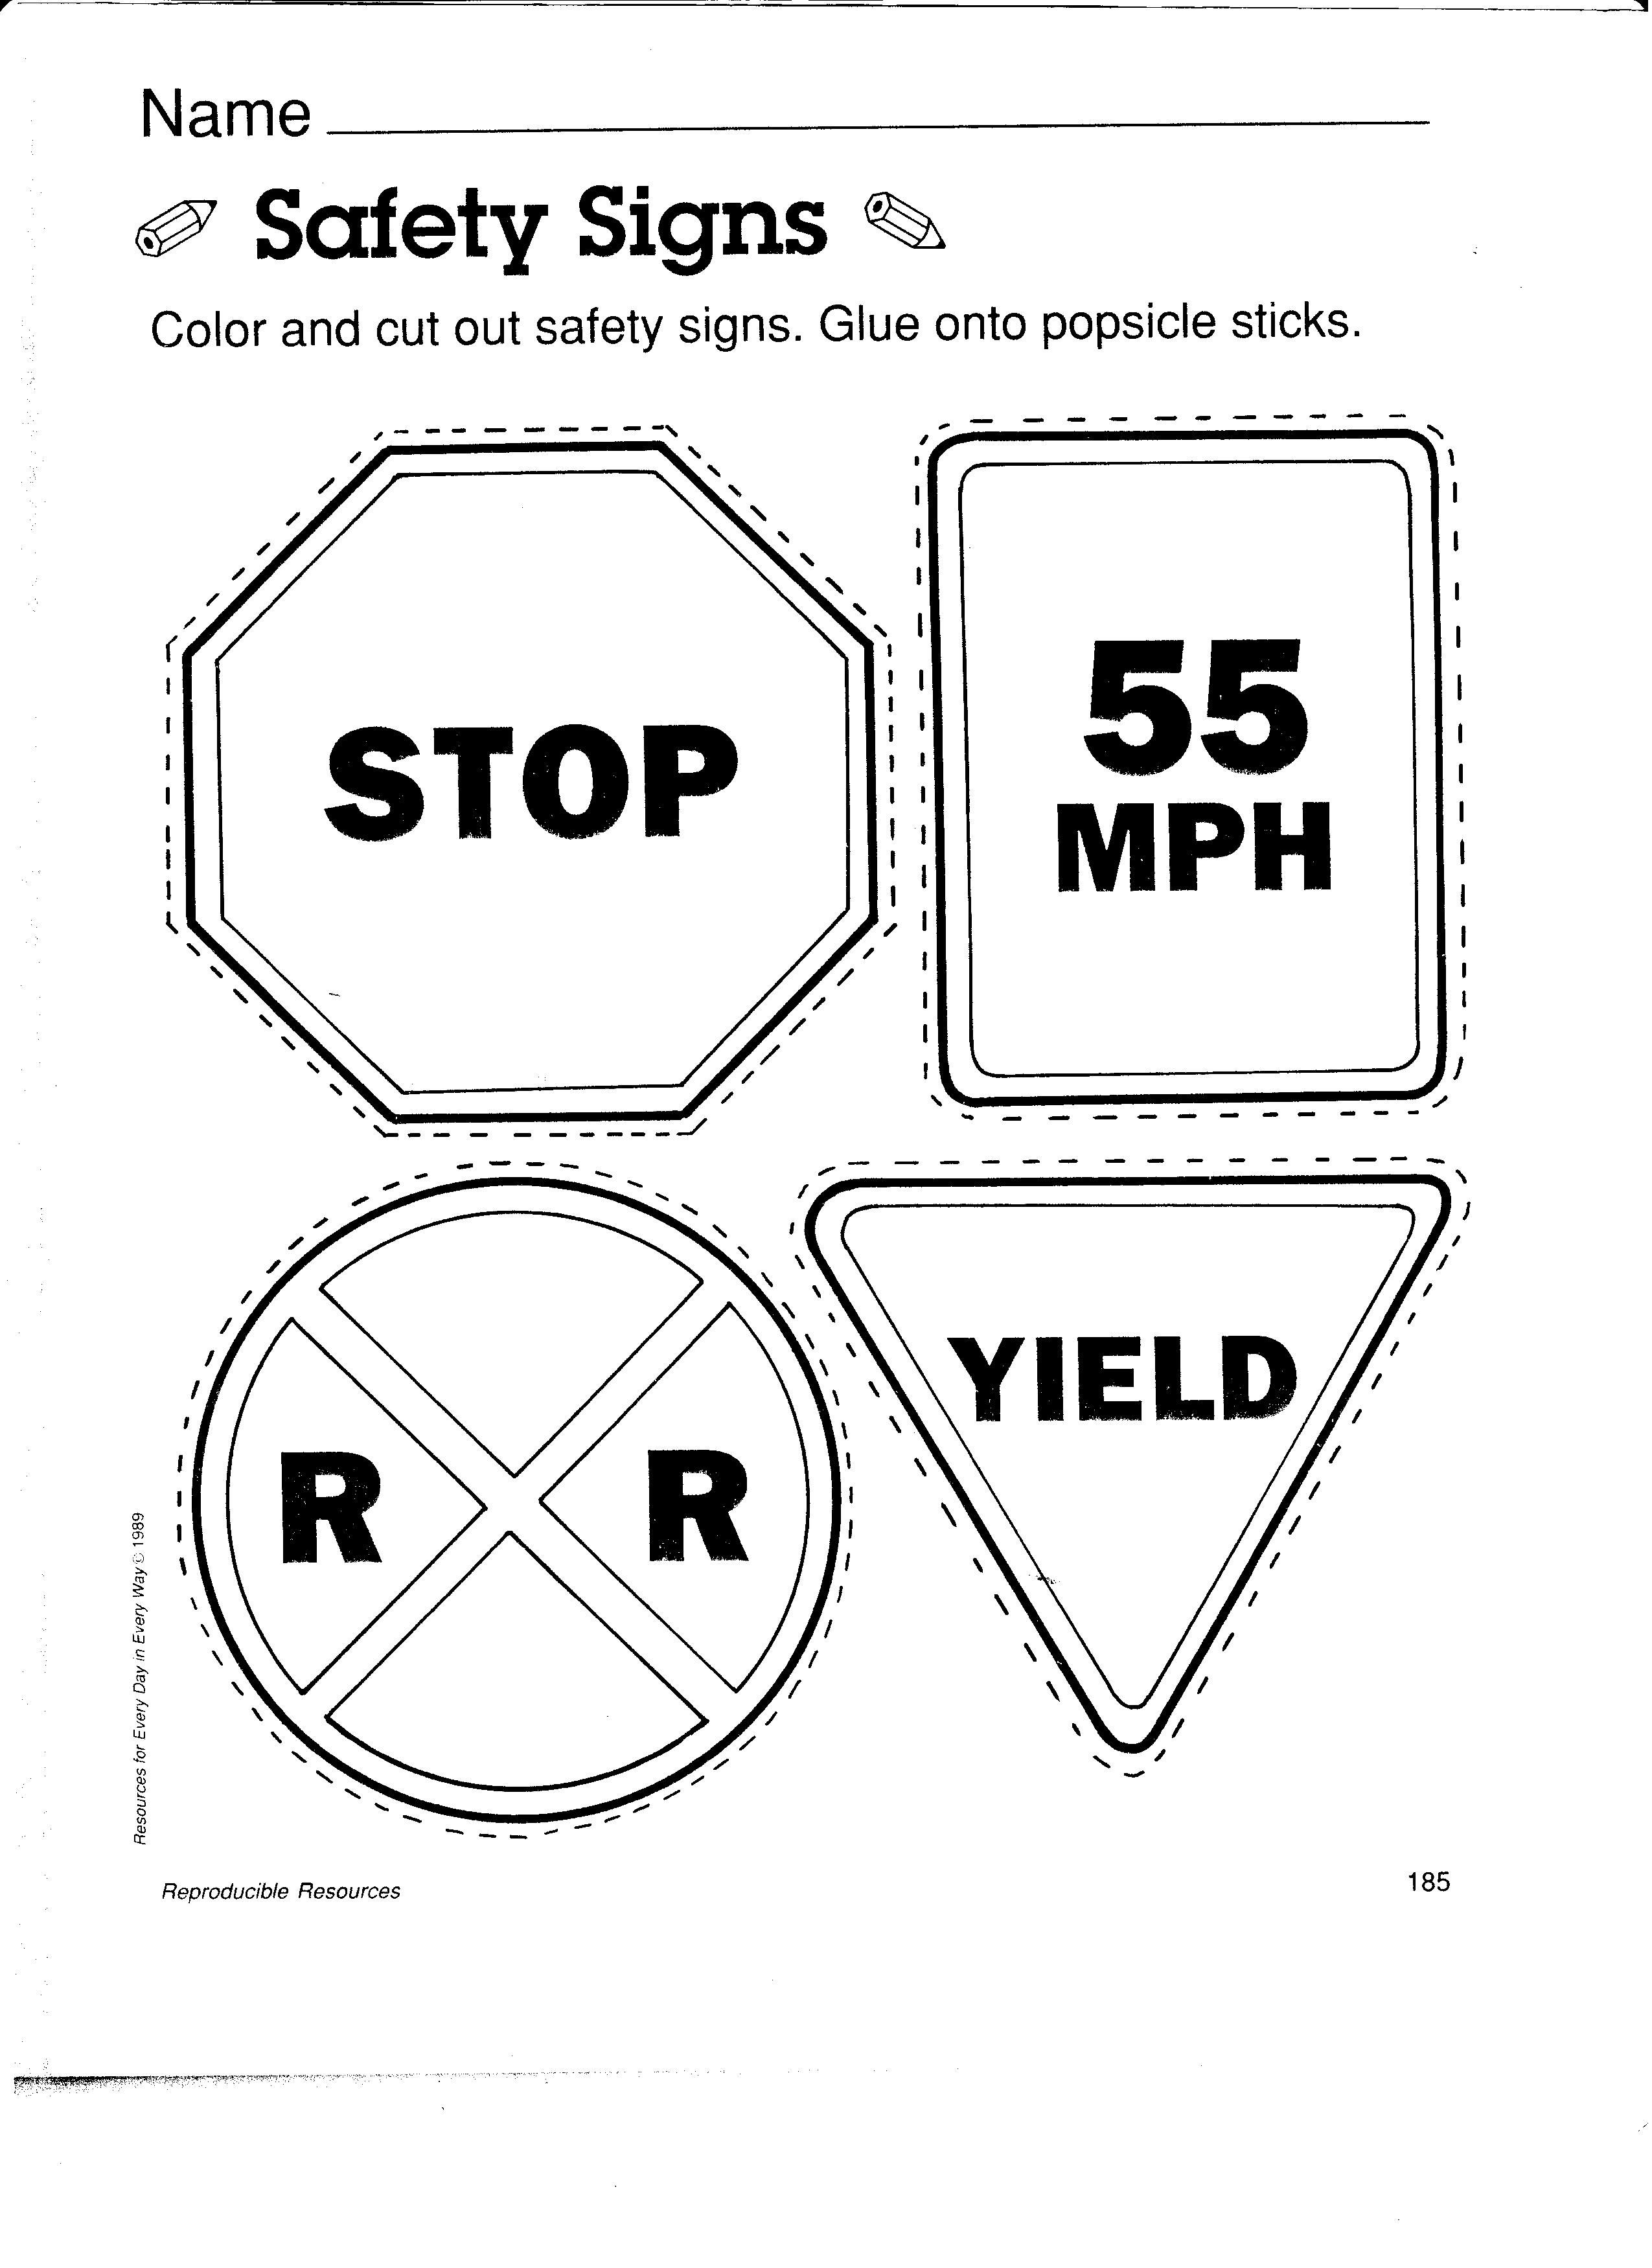 caution sign coloring page safety coloring printable for kids do not open the page sign caution coloring